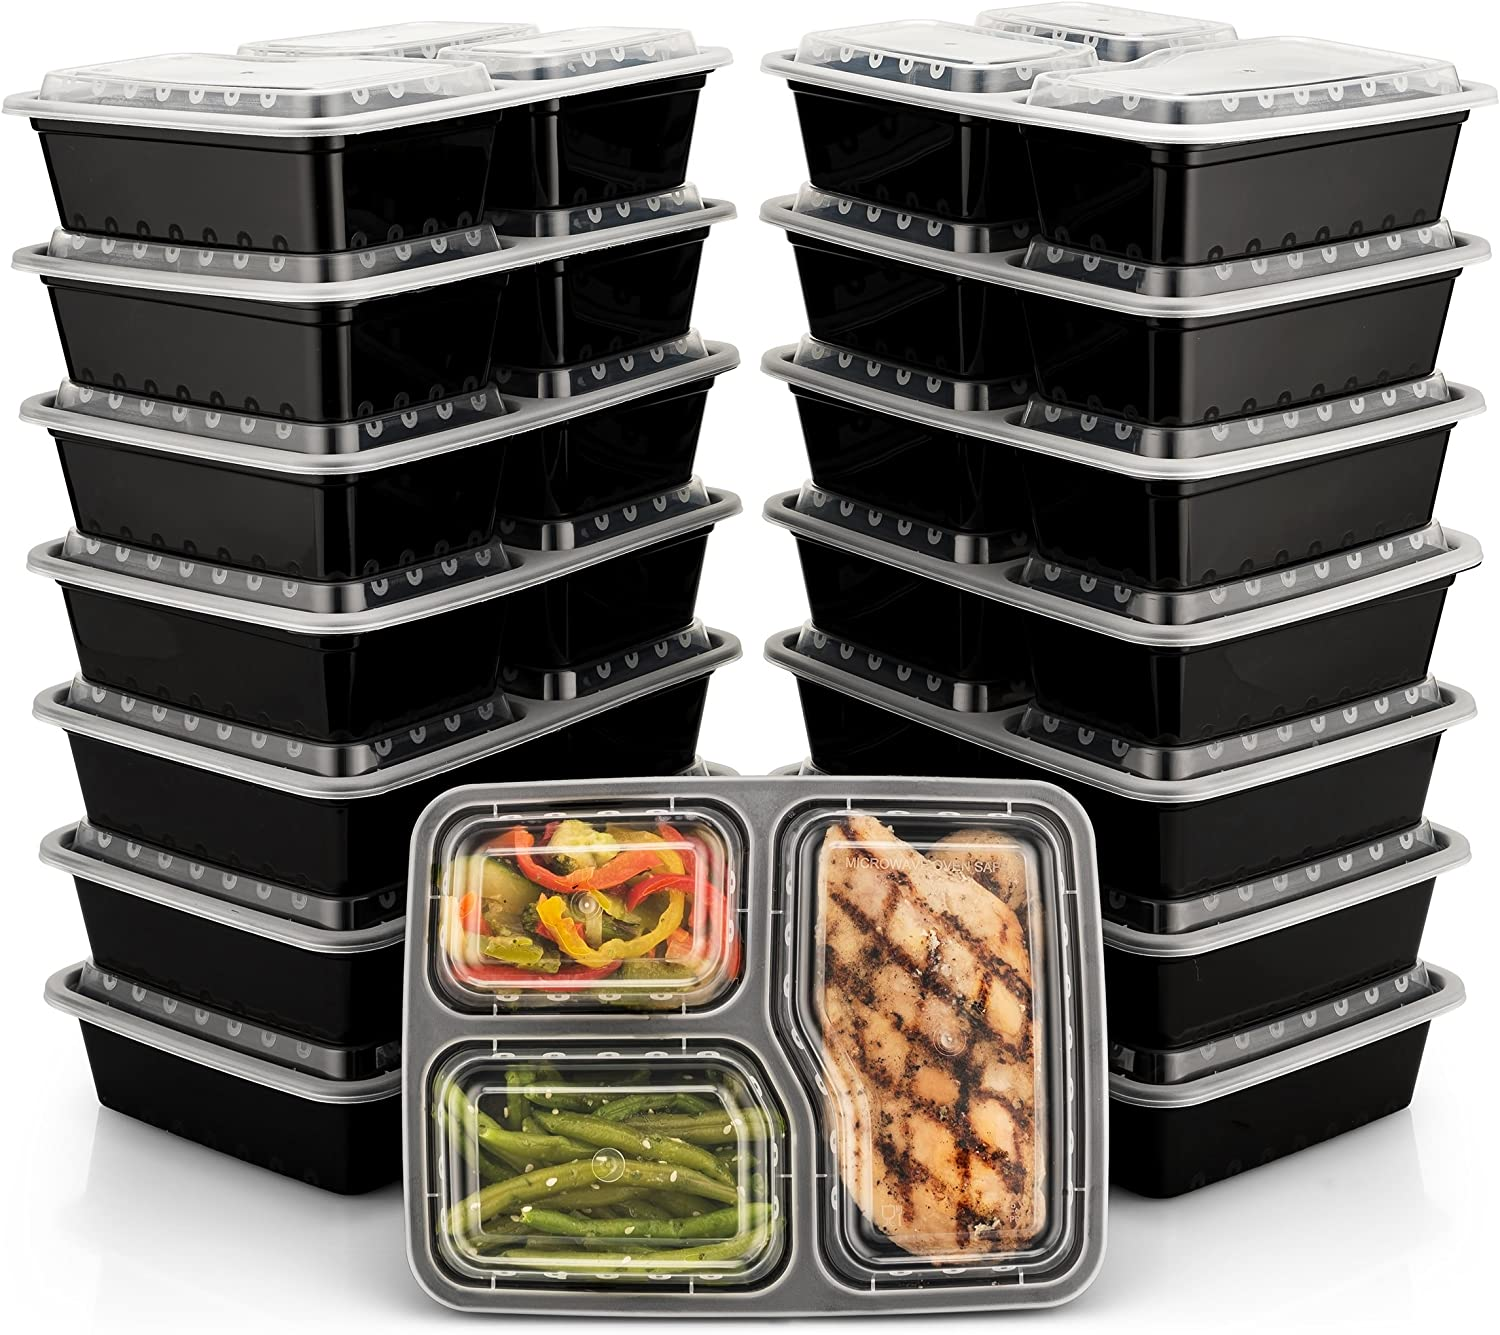 BloominGoods Meal Prep Containers | 3 Compartment Food Storage Container with Lids | Microwave, Dishwasher Safe, Reusable Portion Control Plates (15-Pack) by Bloomingoods